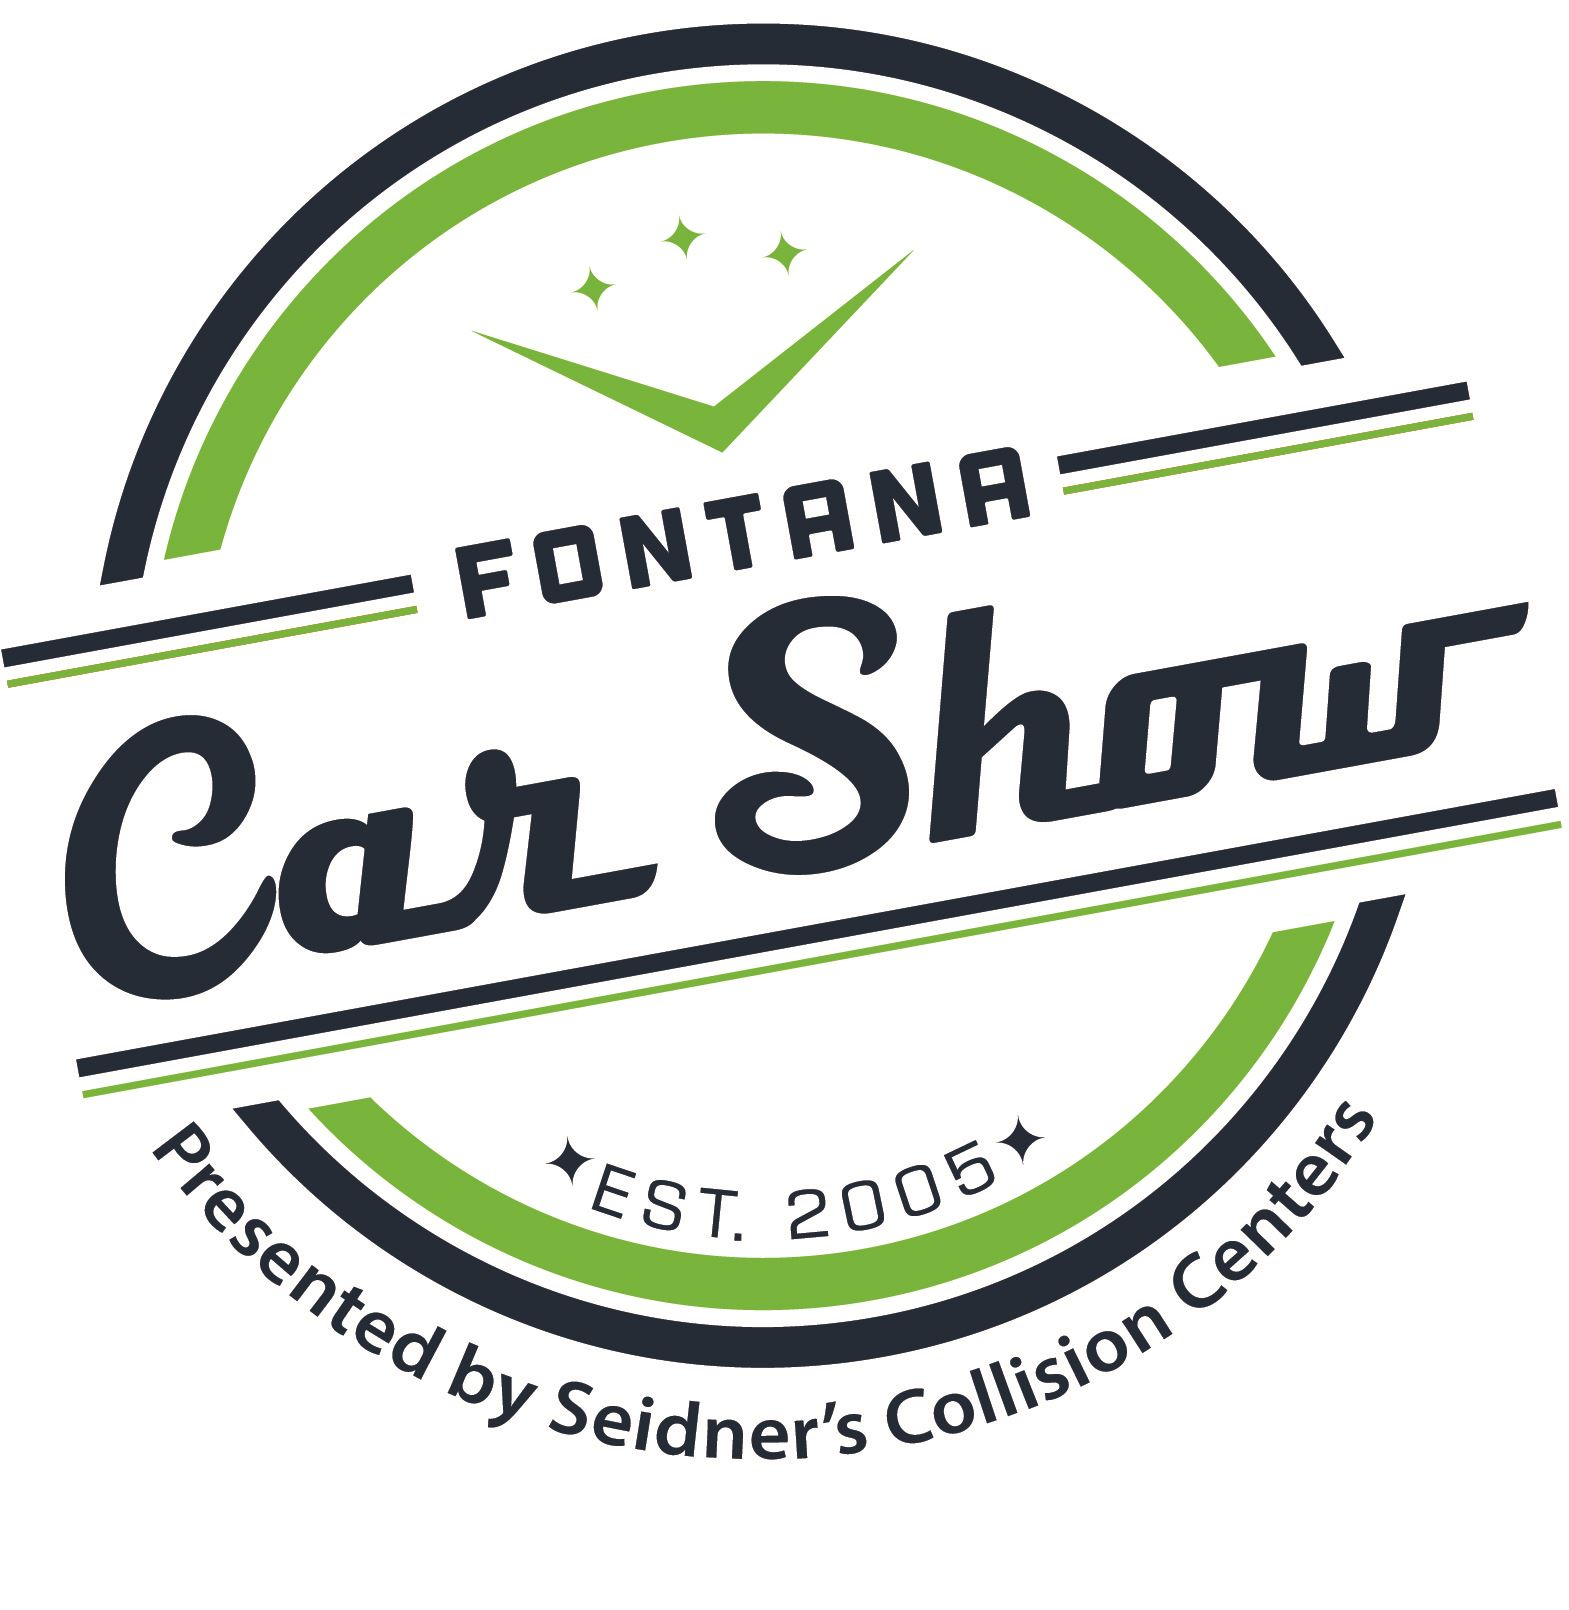 Car Show Logo White Bkgrnd